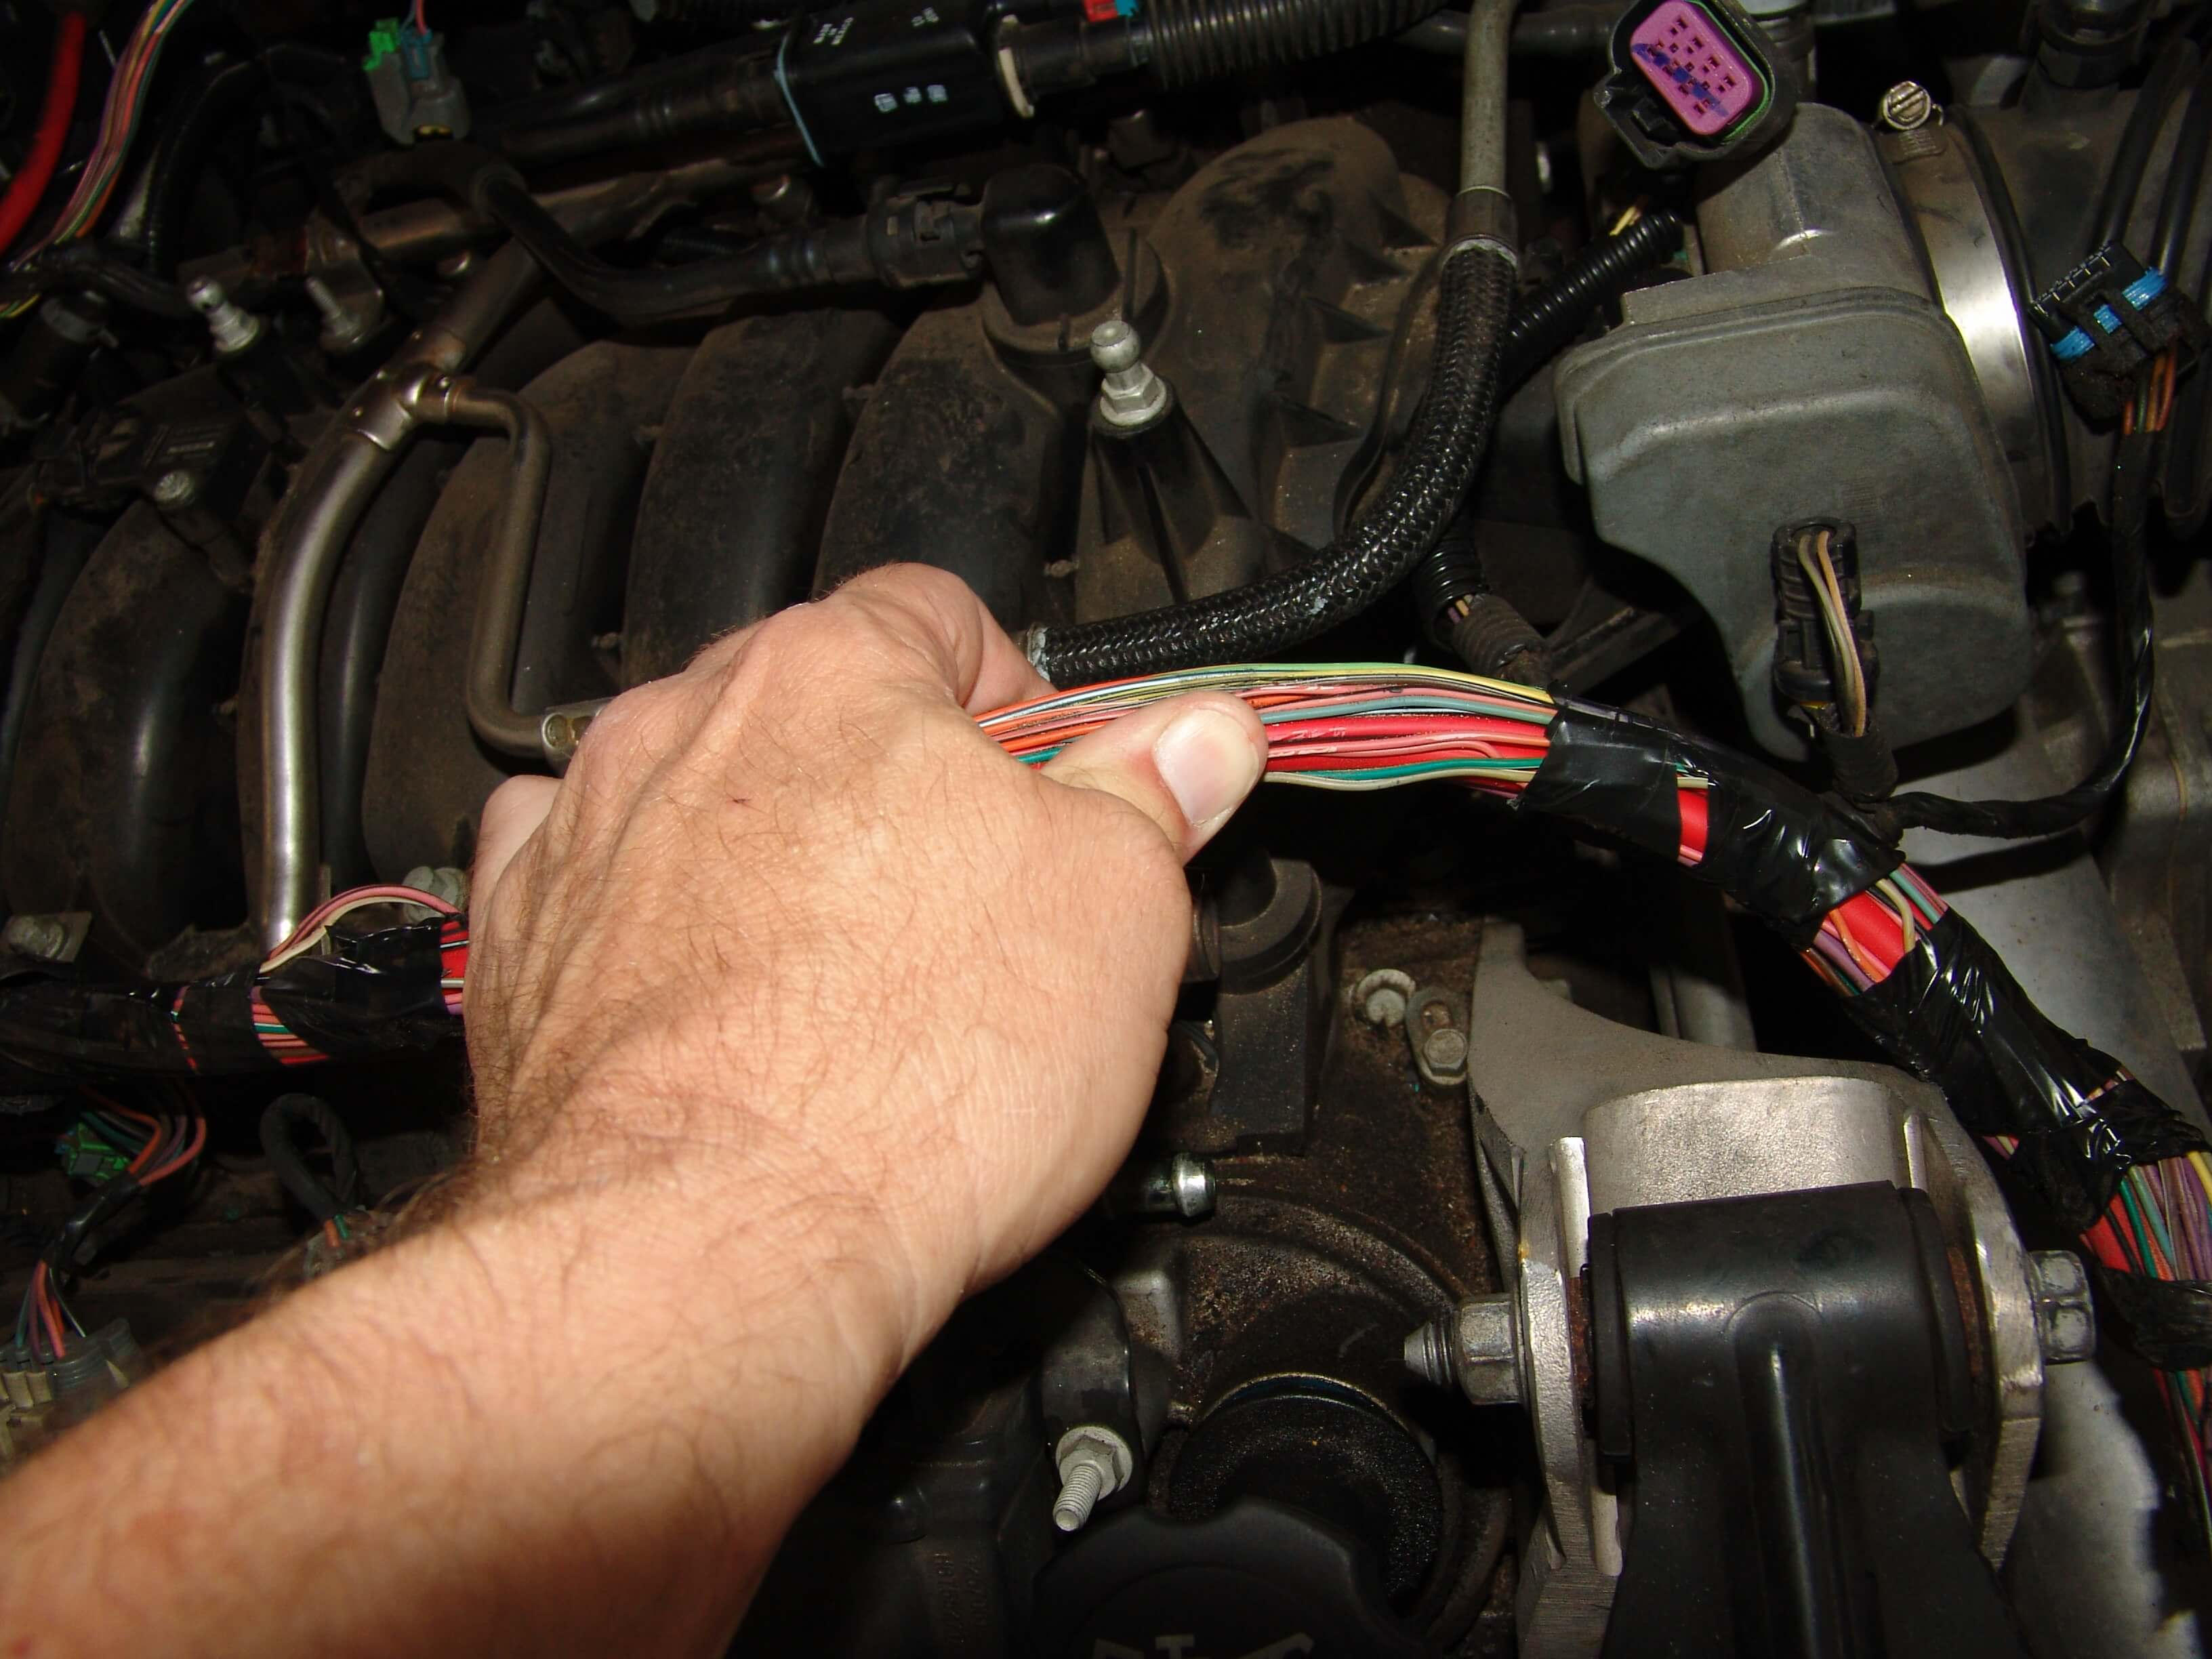 Sparky's Answers - 2007 Chevrolet Monte Carlo SS Emissions 1 Fuse Blows